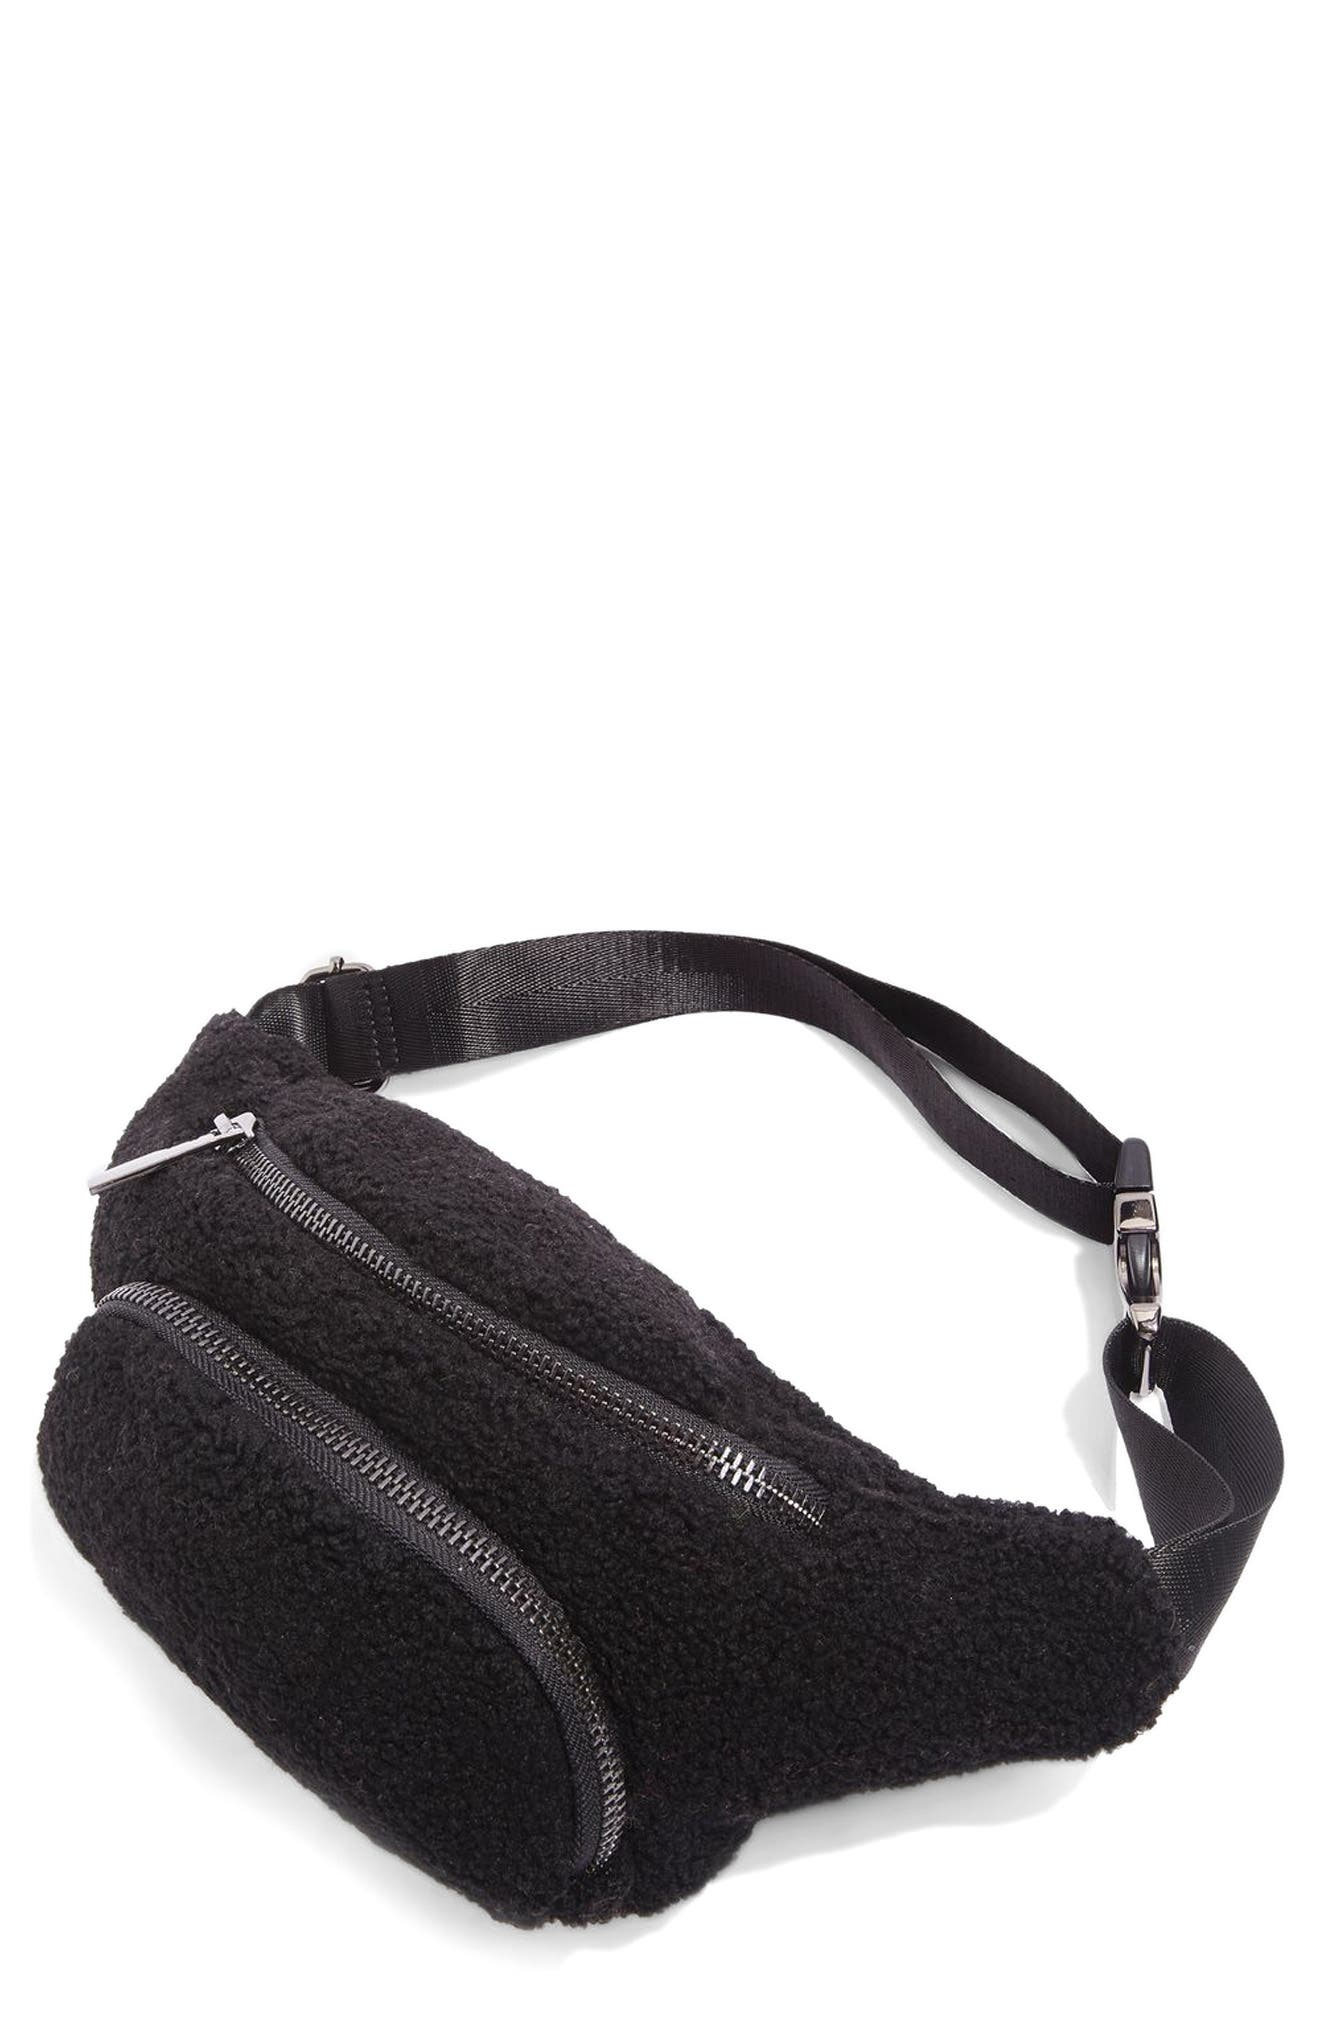 Benny Borg Belt Bag,                             Main thumbnail 1, color,                             Black